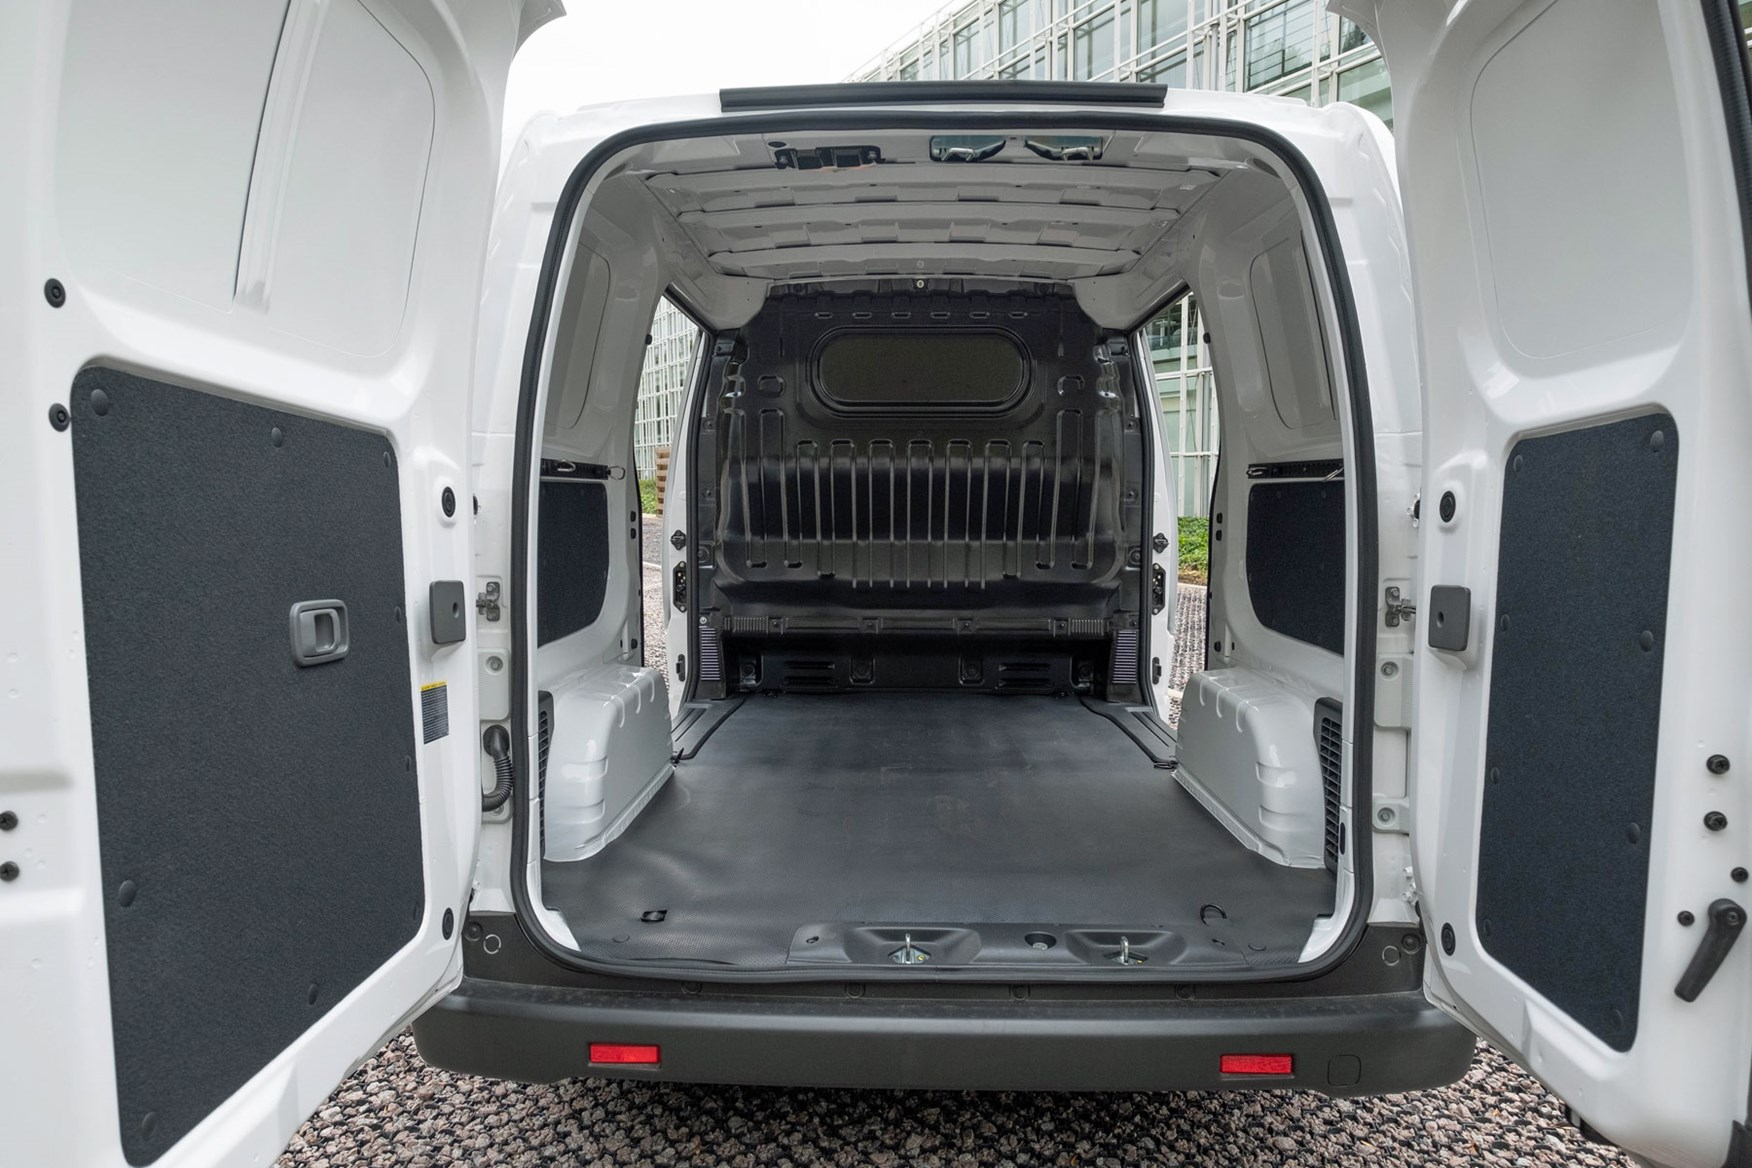 Nissan e-NV200 load area dimensions - load space, payload, 2020